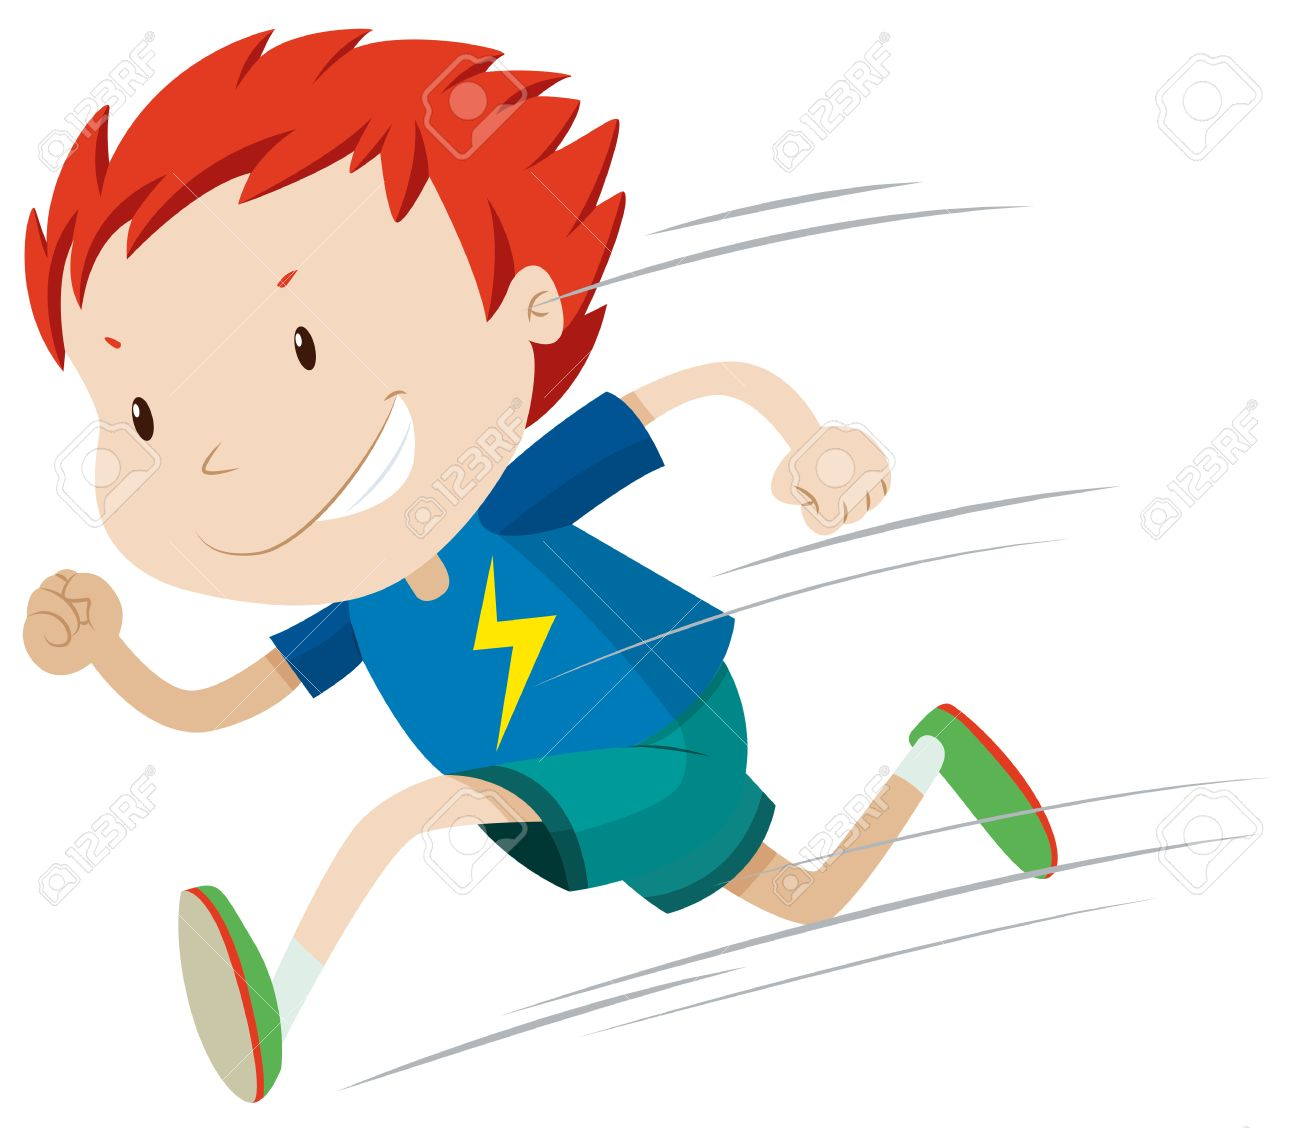 Boy running very fast illustration.